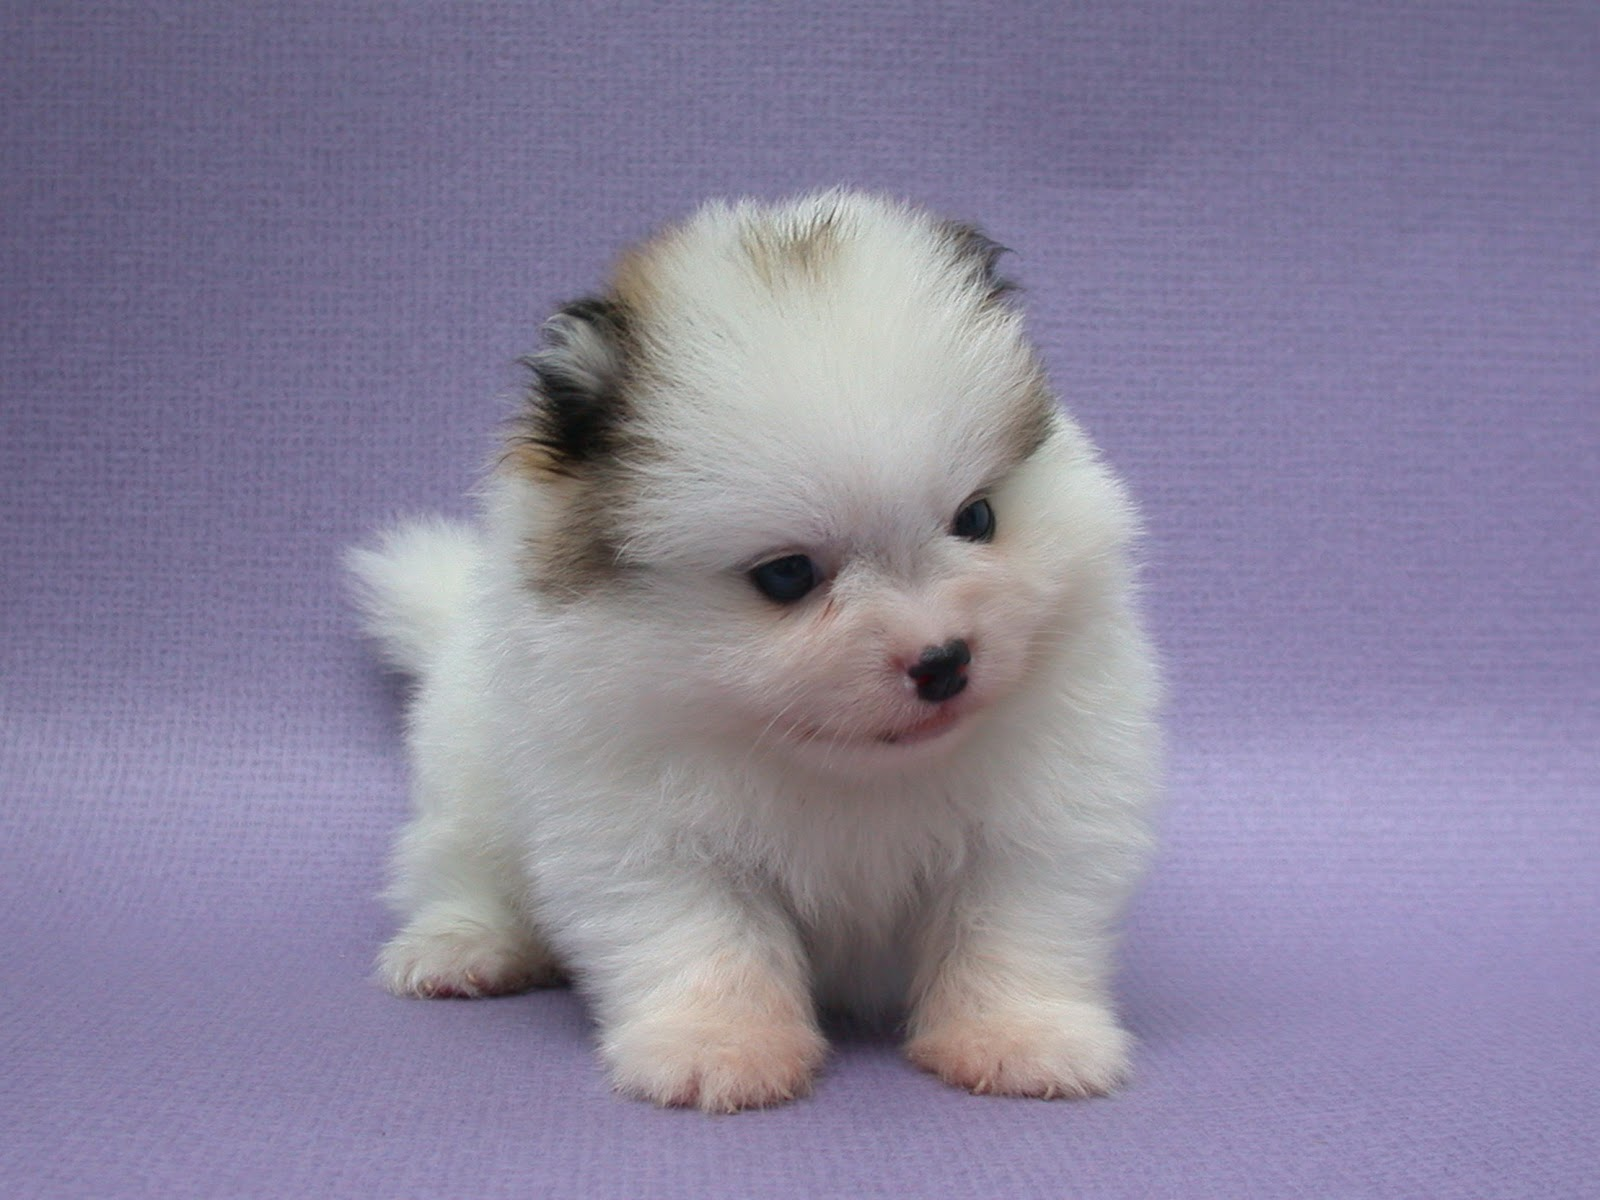 Cute Puppy Dogs: Pomeranian Puppies